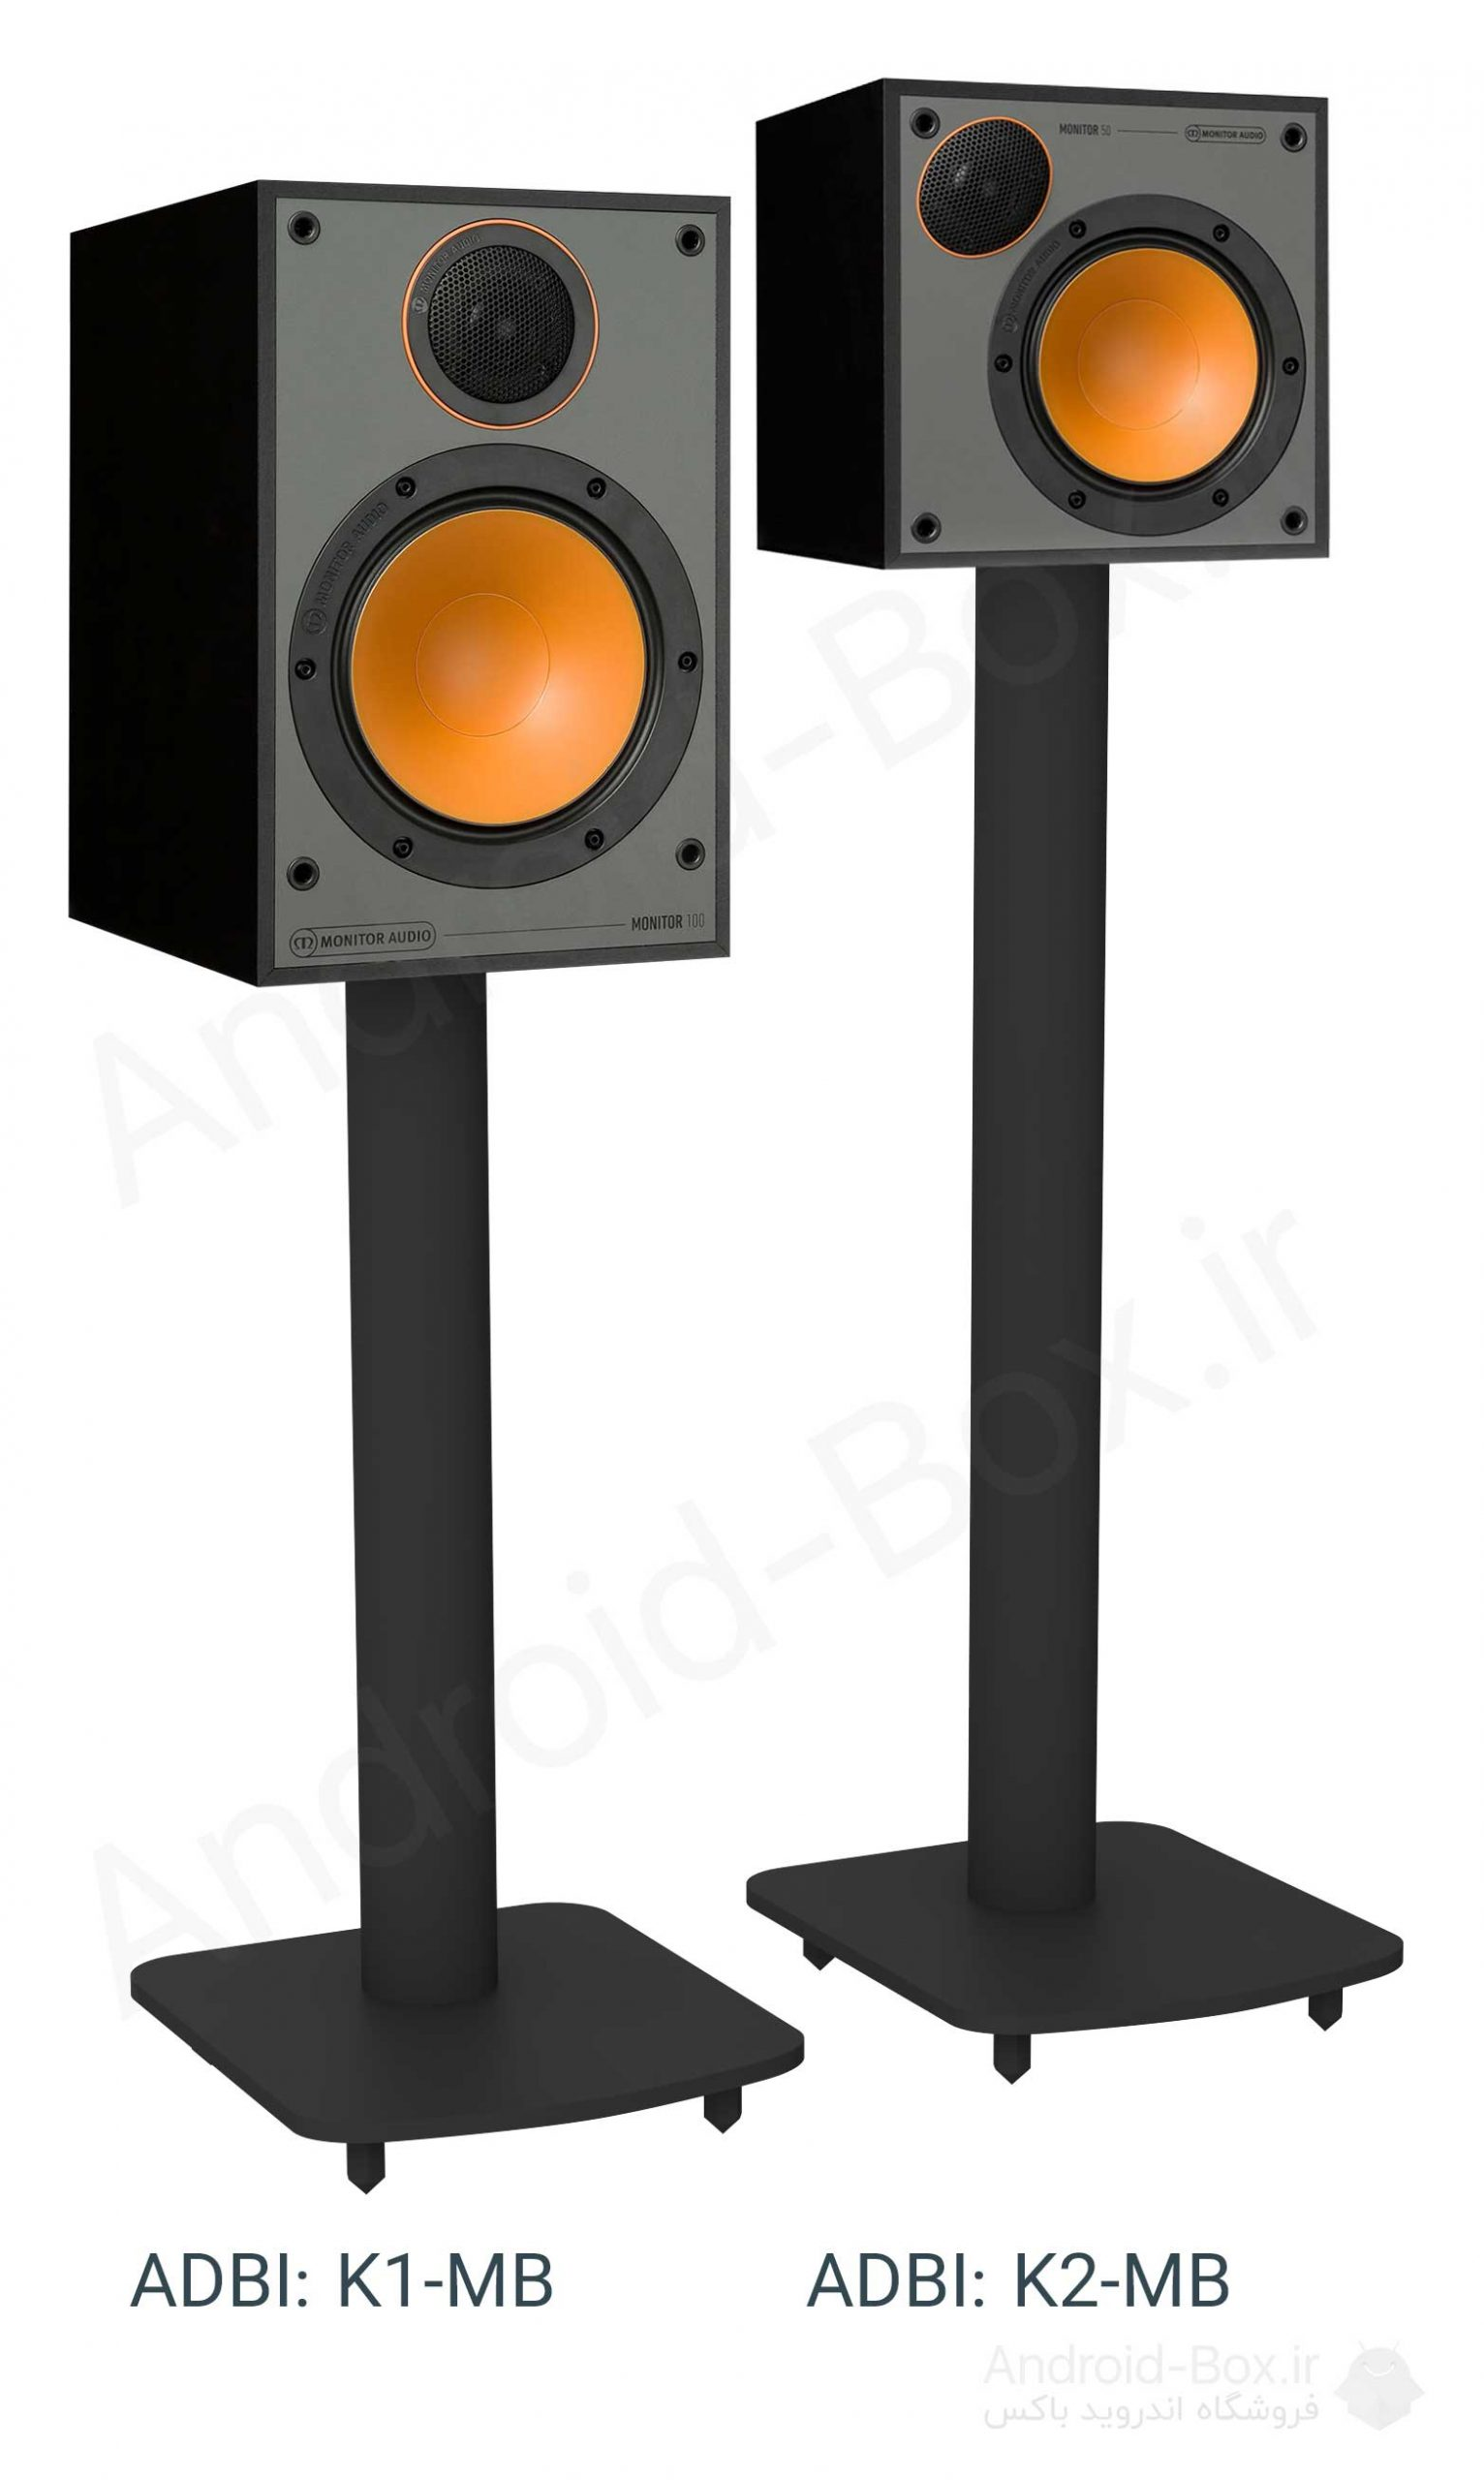 Android Box Dot Ir PRODUCTS Professional Speaker Stands K Series Mate Black